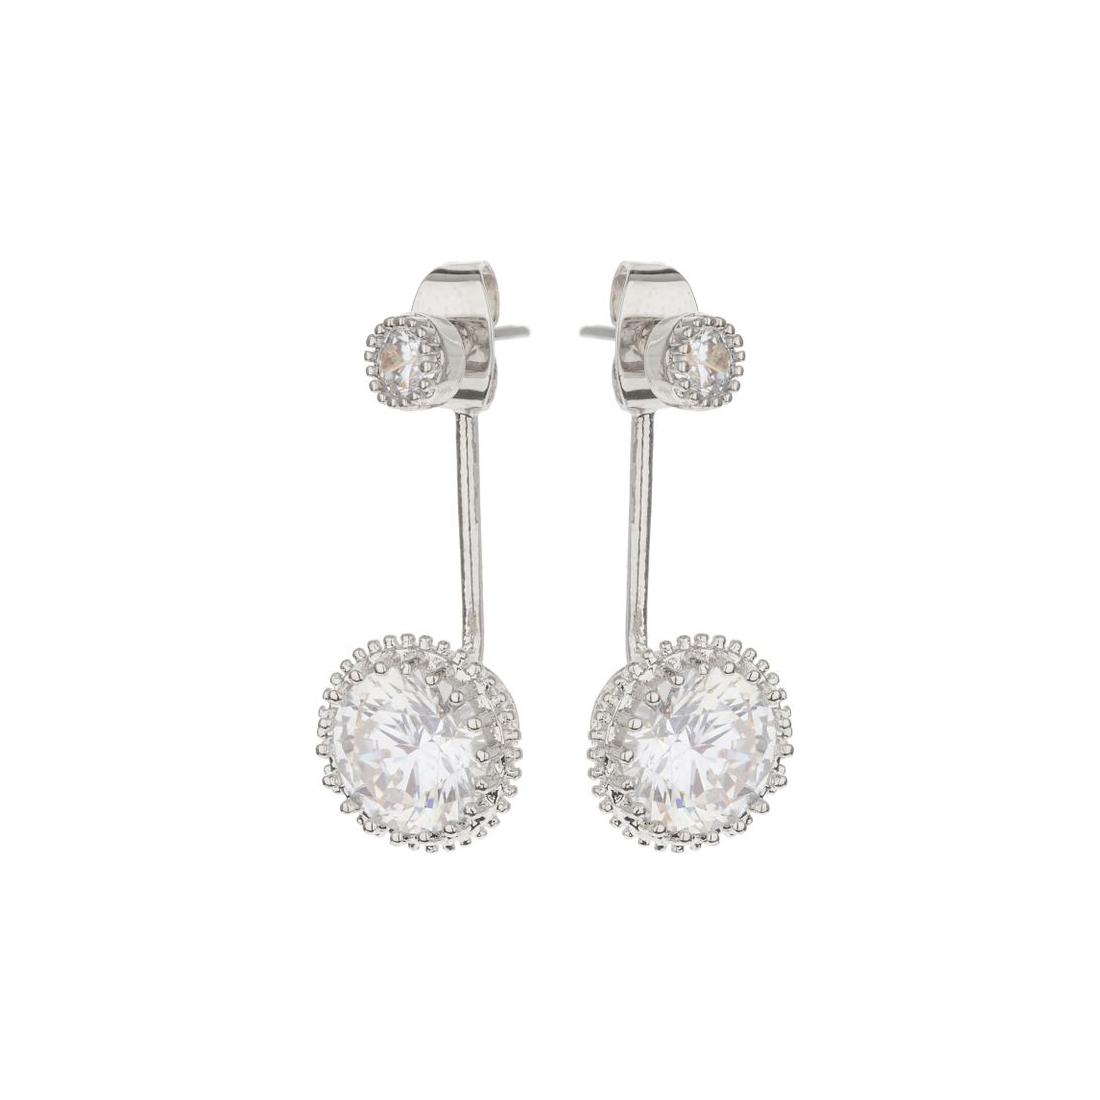 Mikey Silver Tone Round Clear Crystal Ear Jackets